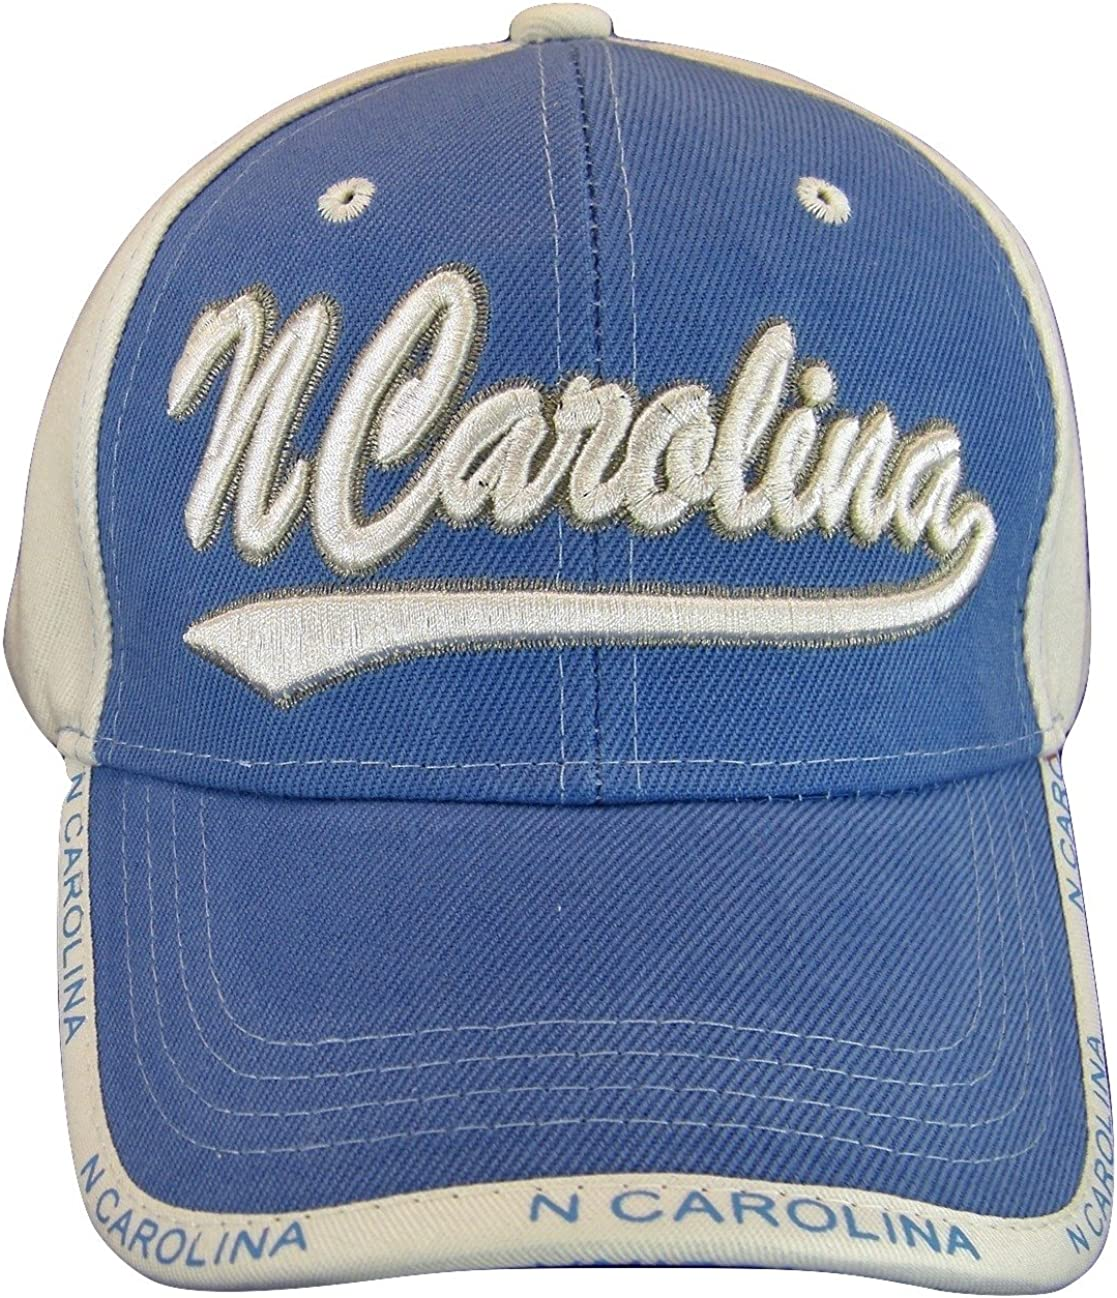 North Carolina Adult Size Curved Cap Max 41% OFF Baseball Spring new work one after another Brim Adjustable